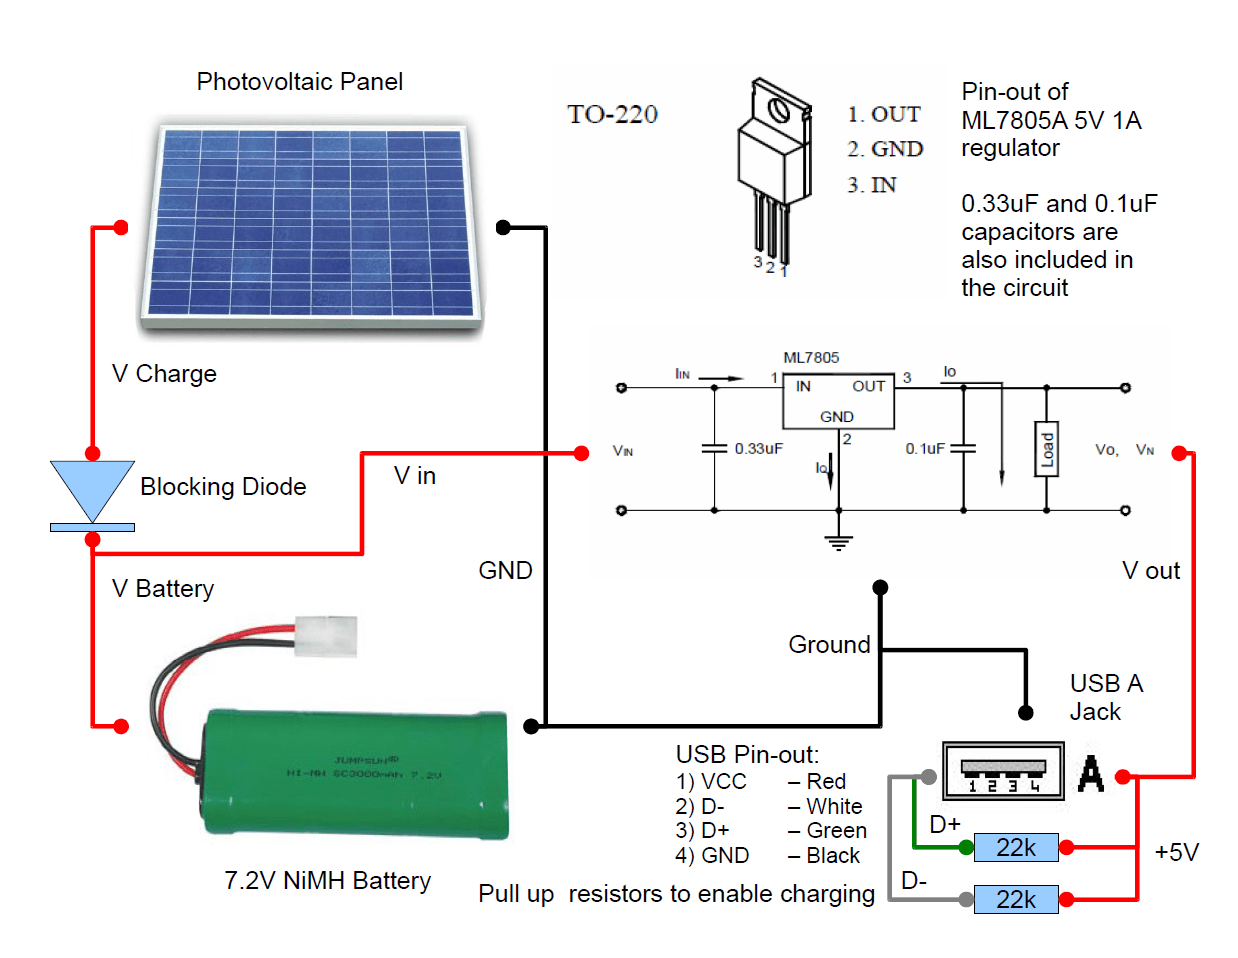 wiring diagram for solar panel to battery volvo fh panels wired 12v batteries in parallel